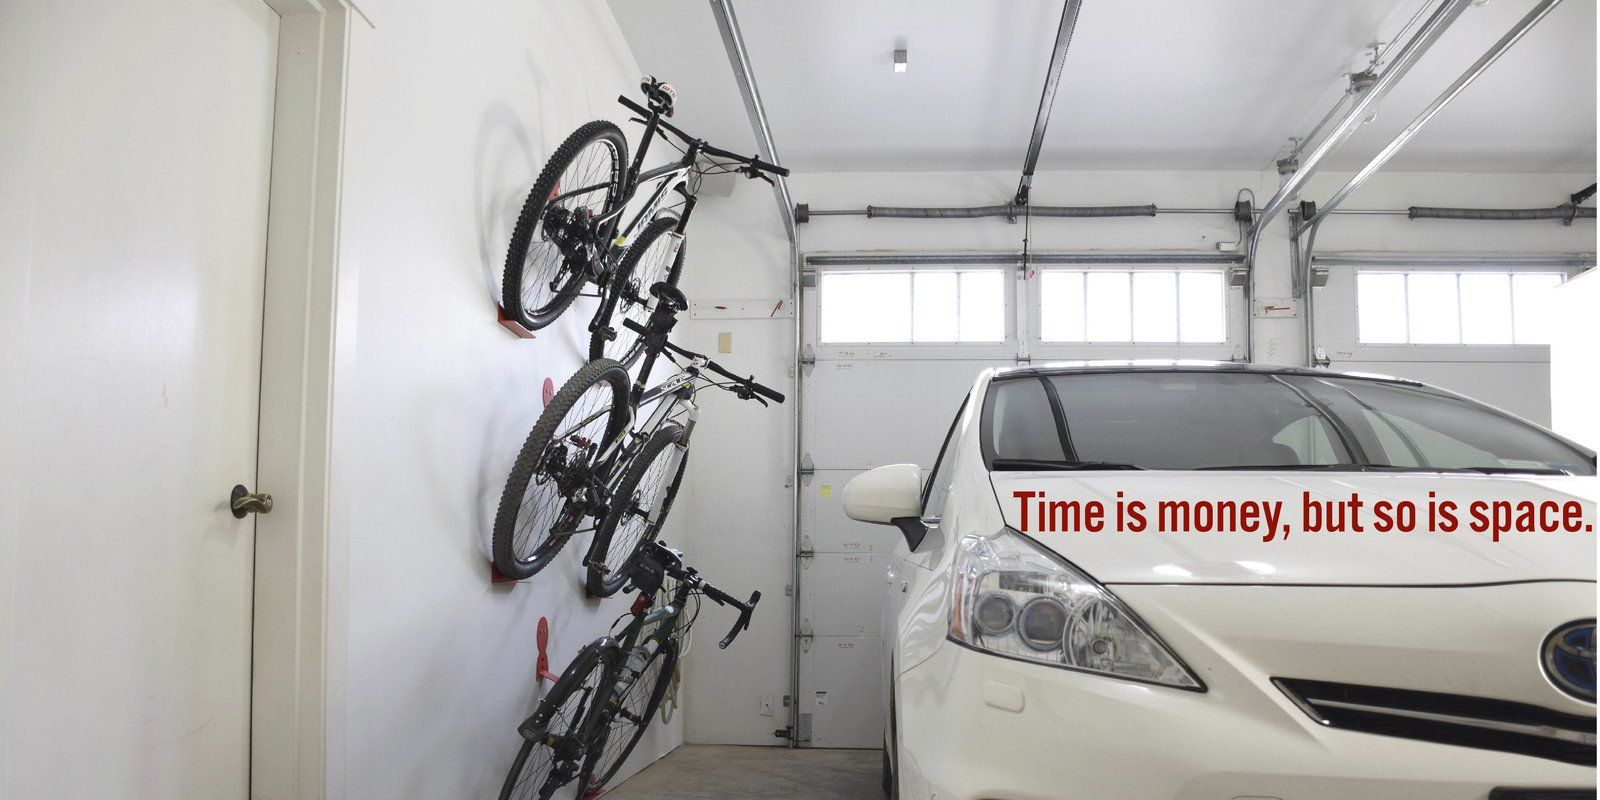 Bike Wall Mount And Cycling Storage Solutions Modern And Fun Bicycle Racks That Look Awesome With Or With Bike Storage Solutions Indoor Bike Rack Bike Storage